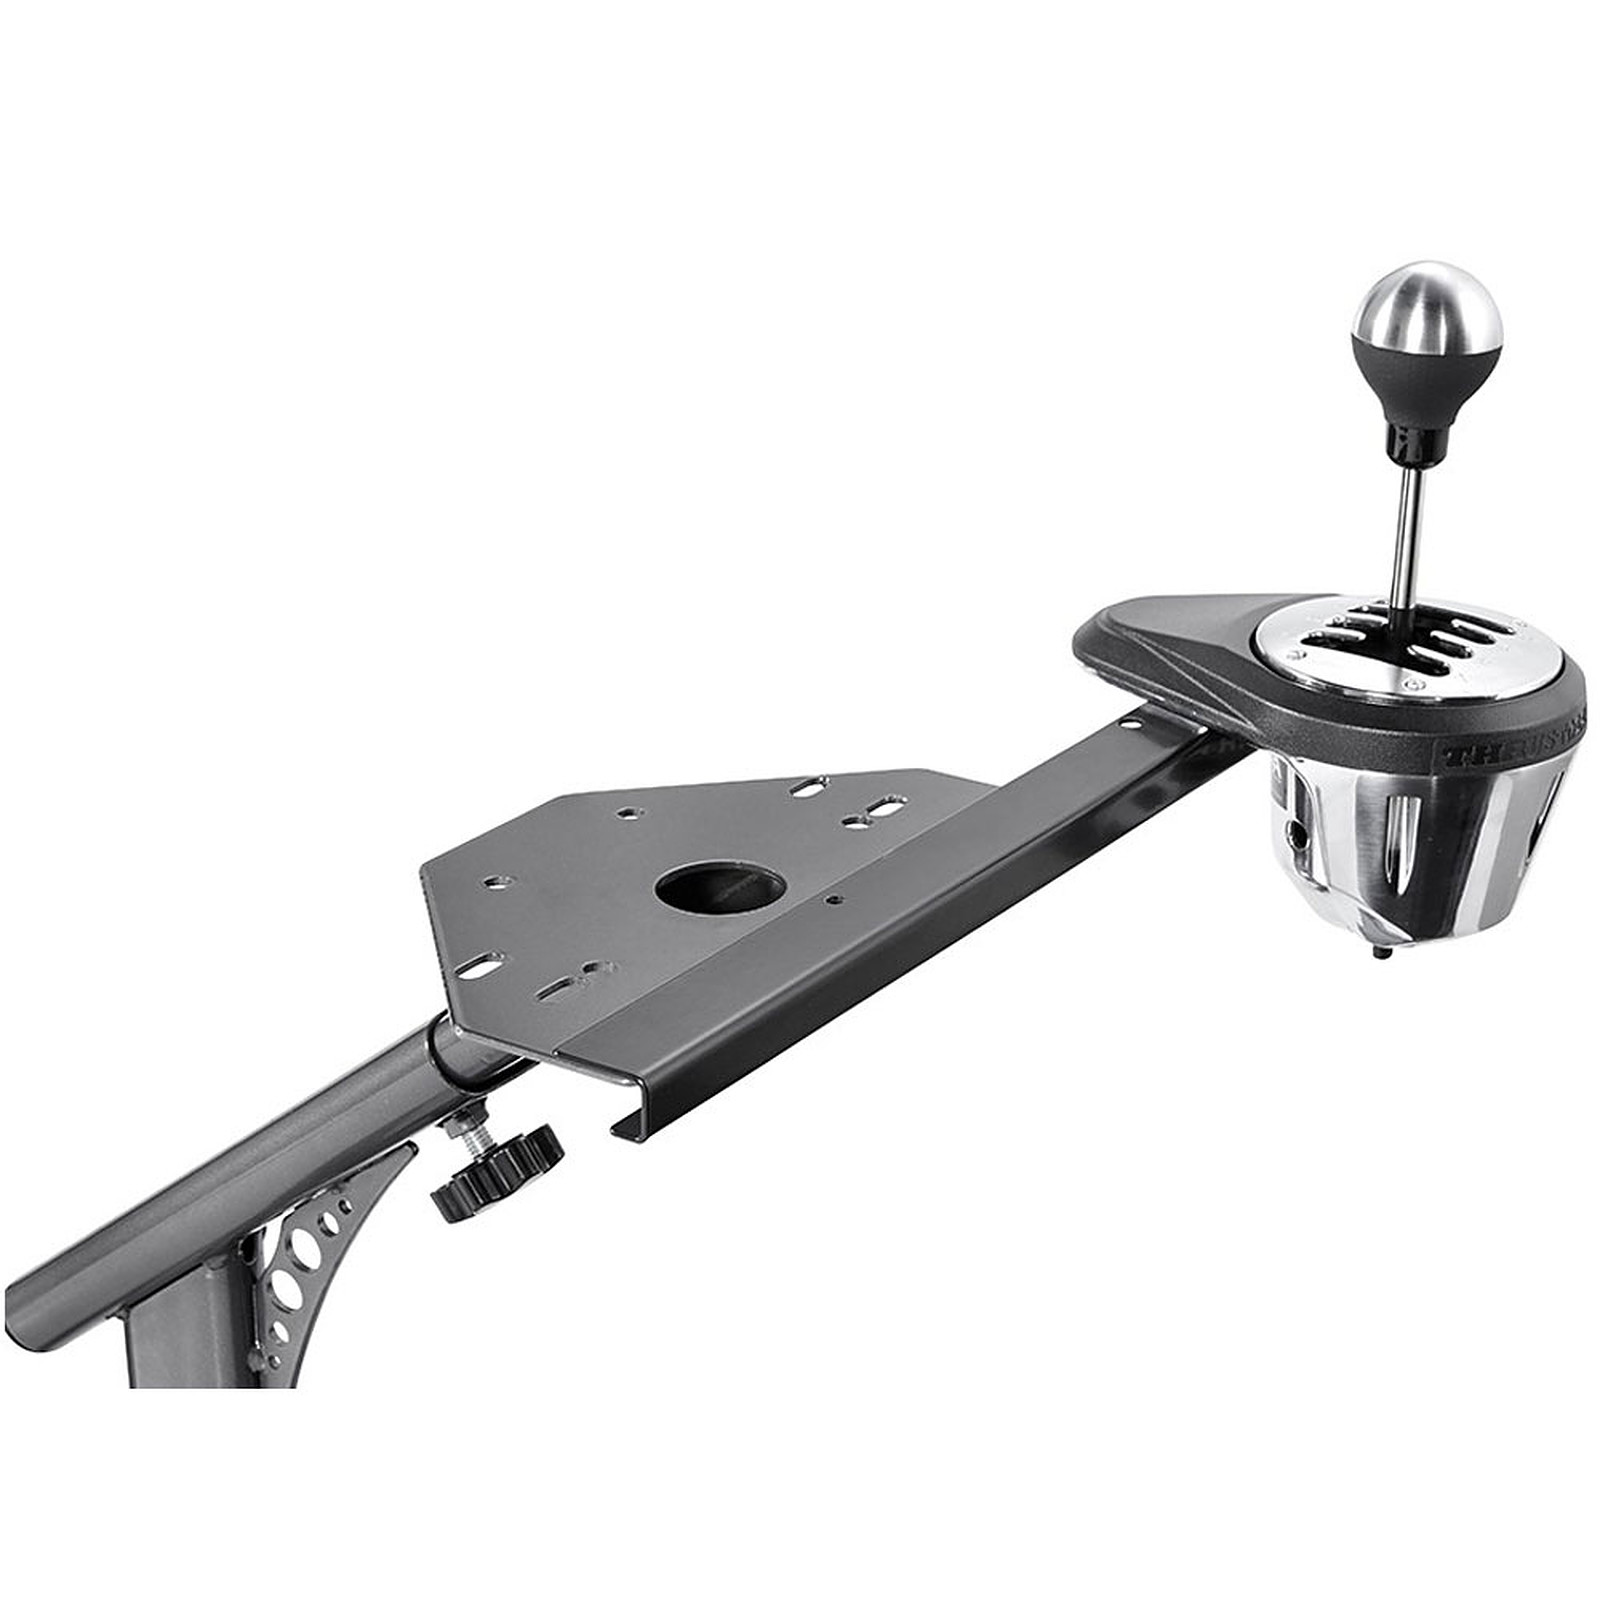 Playseat GearShift Support